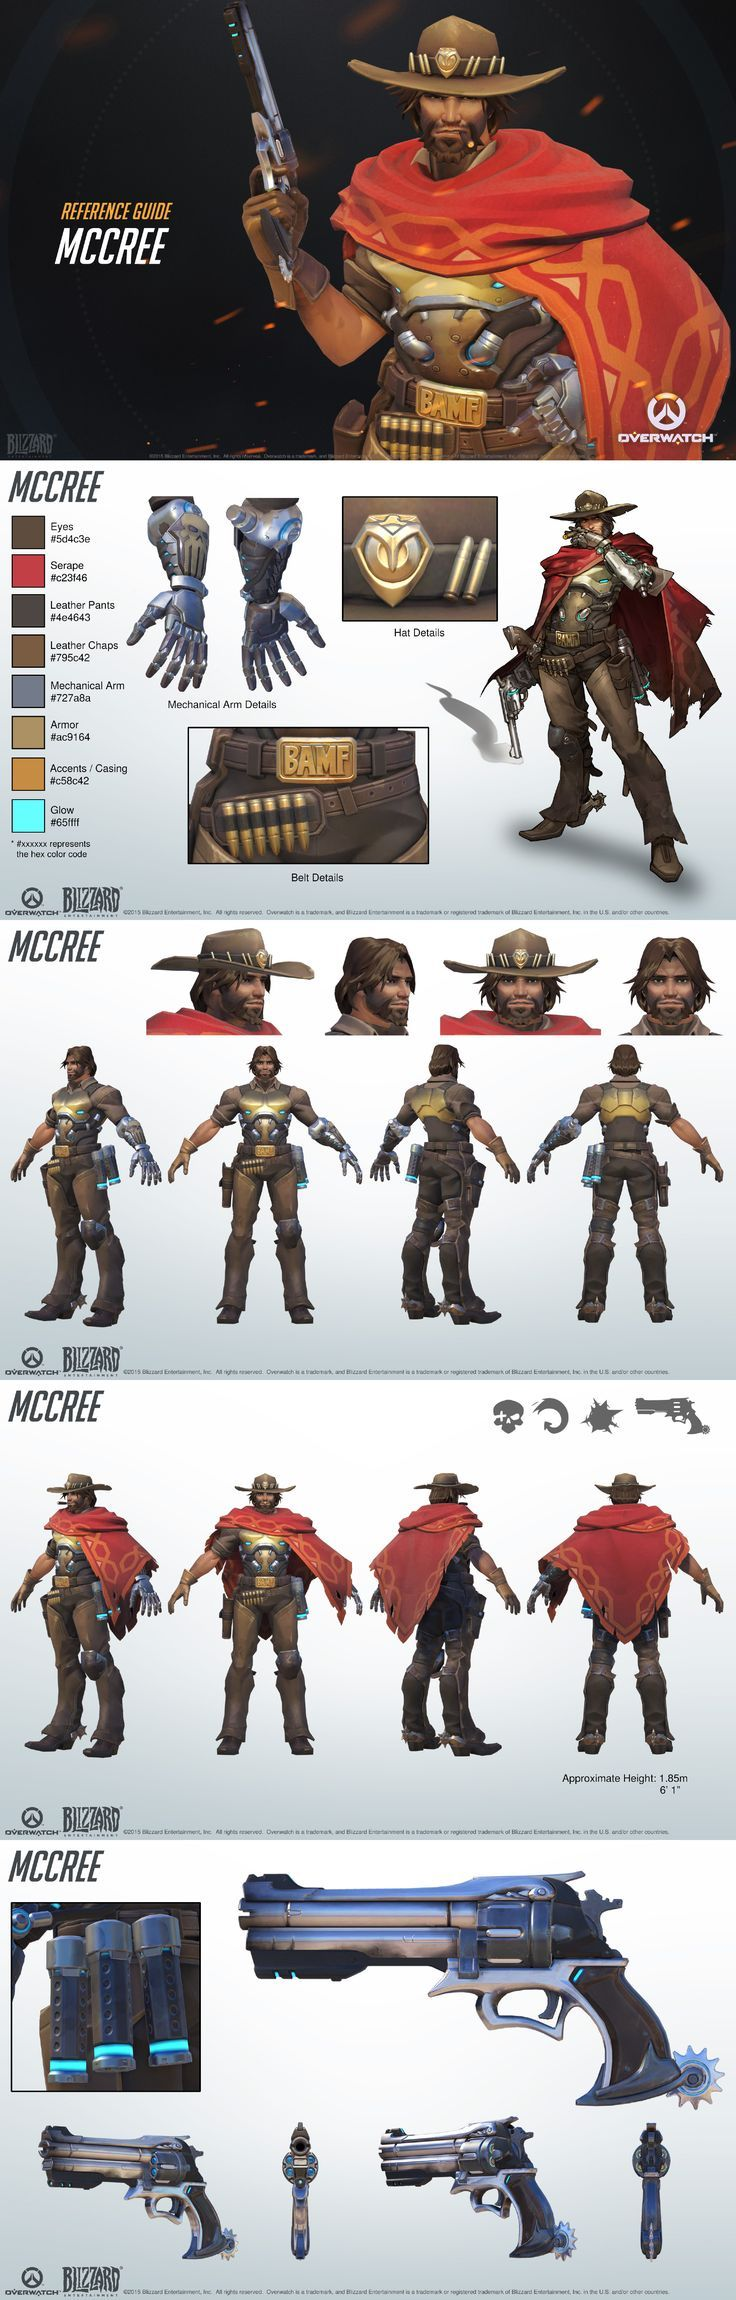 Overwatch - McCree Reference Guide